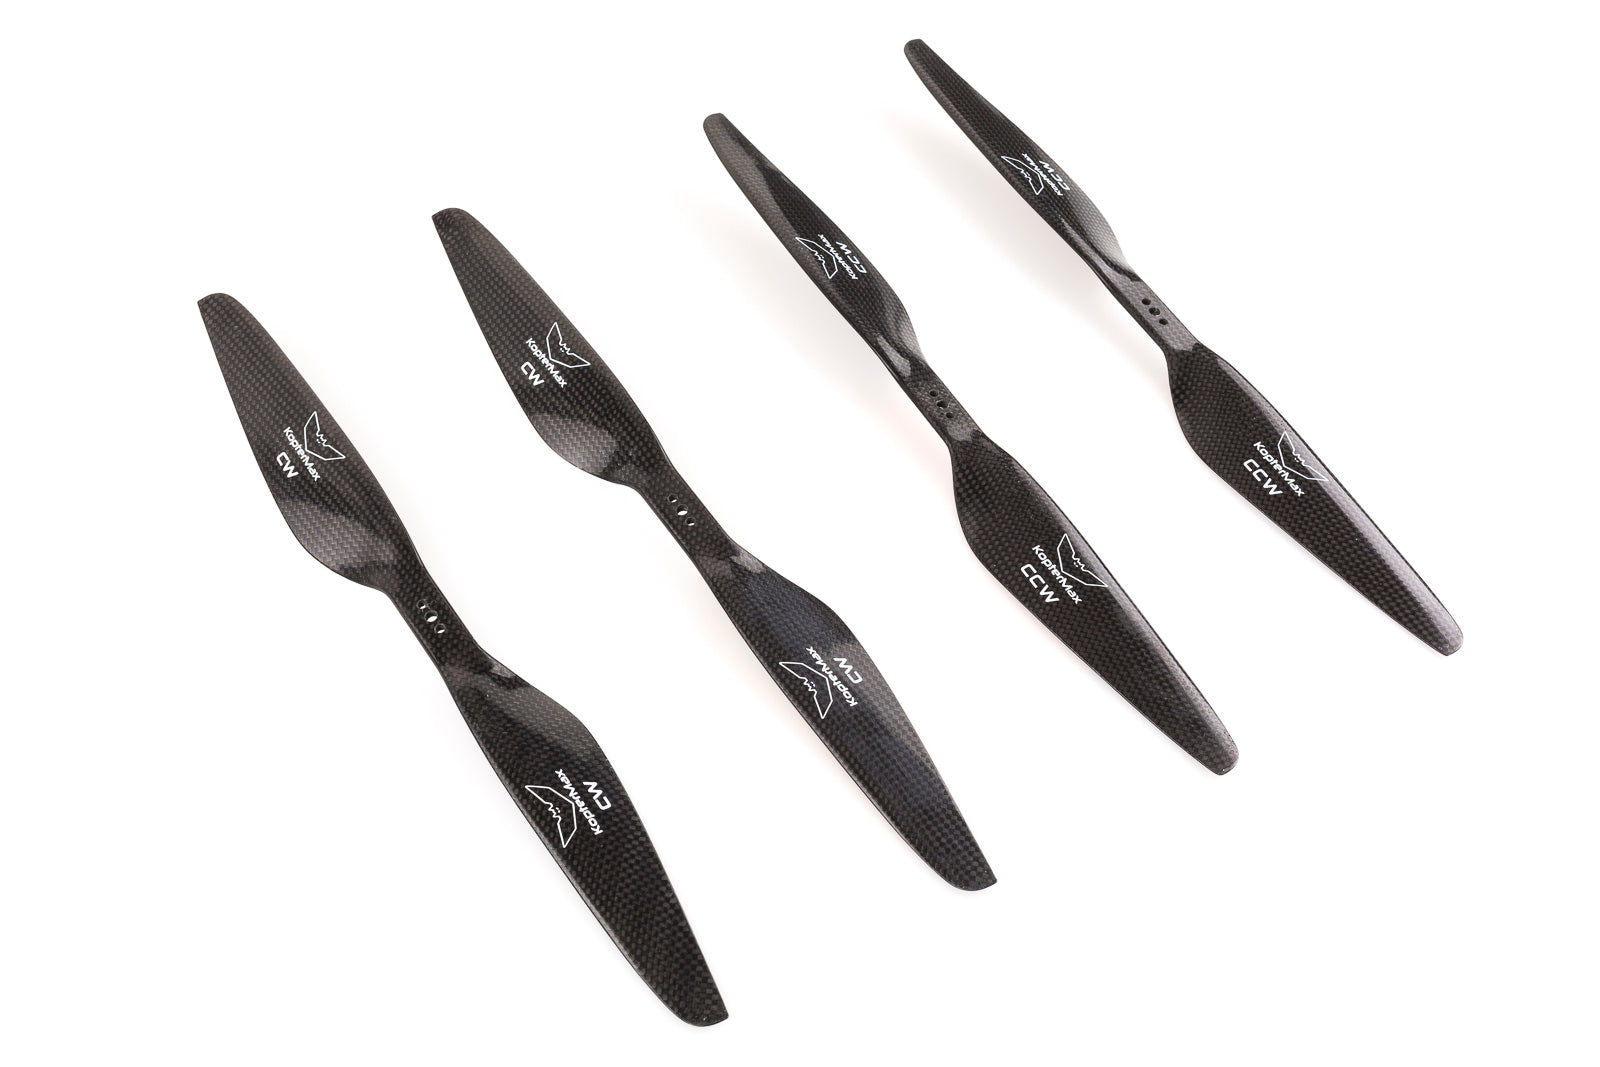 14 Quot Carbon Fiber Propellers For Dji Inspire 1 Matrice 100